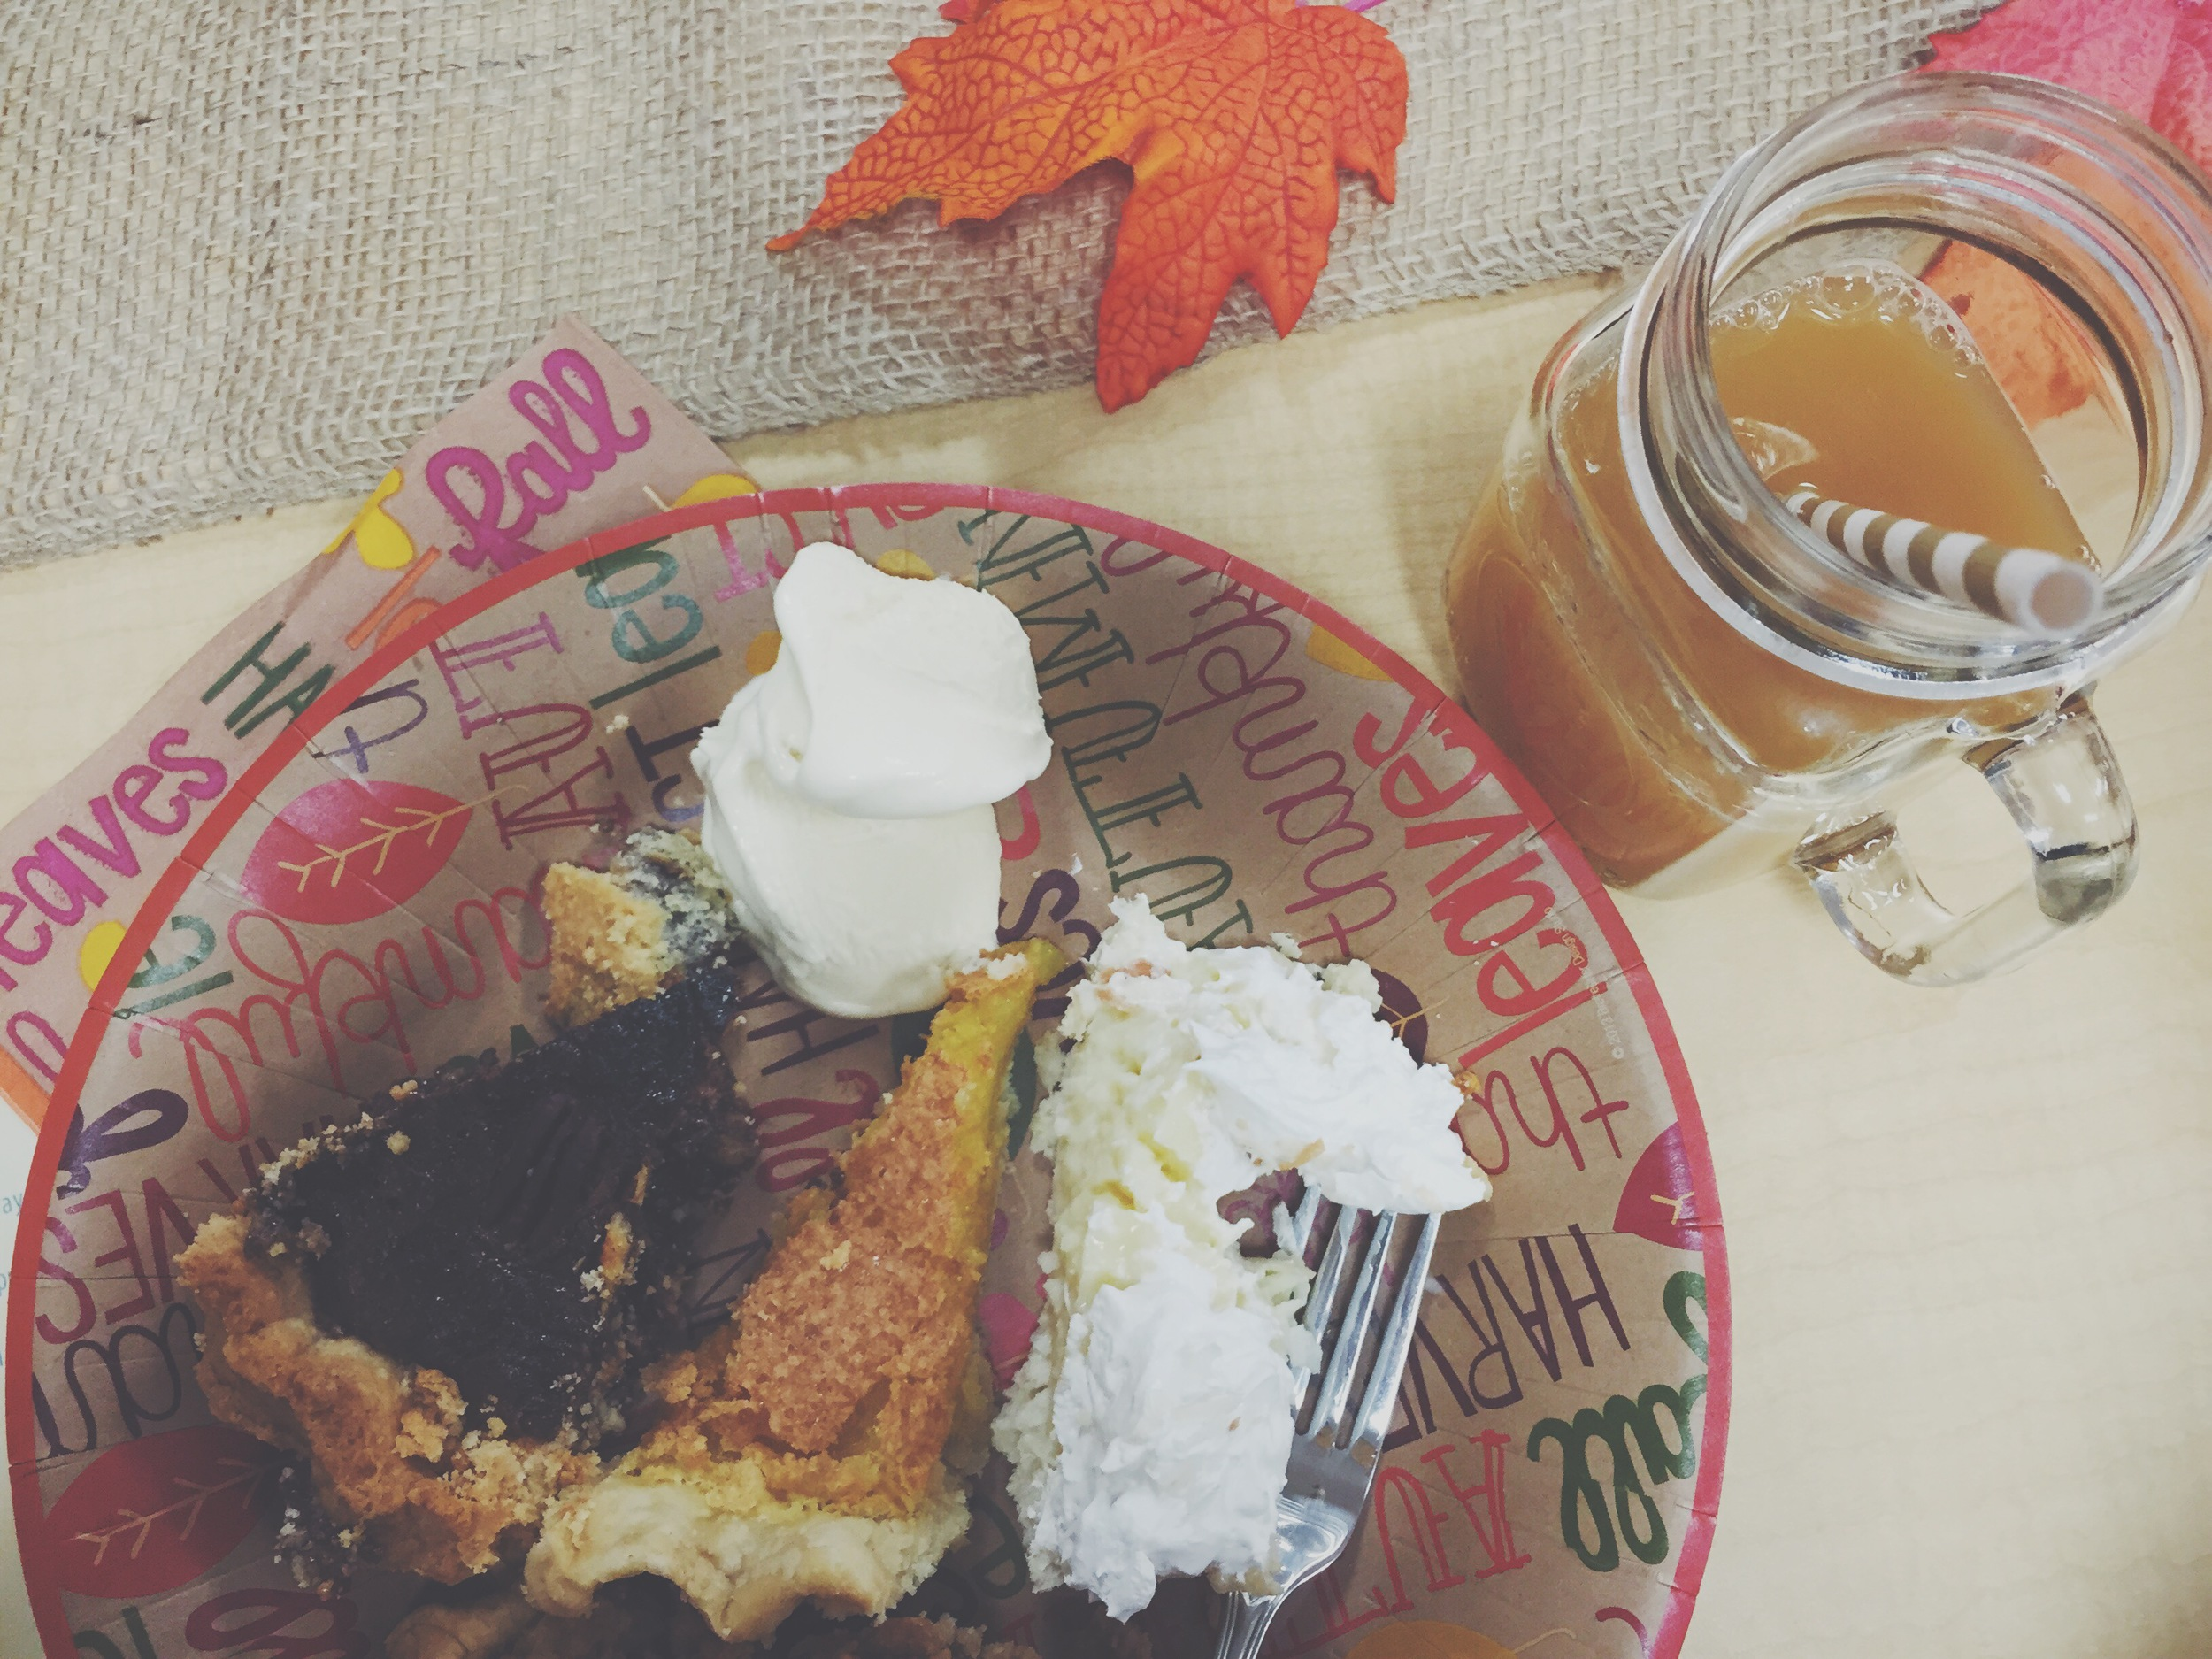 Lil Pumpkin baby shower theme- Served homemade pies and fall drinks | finicky designs